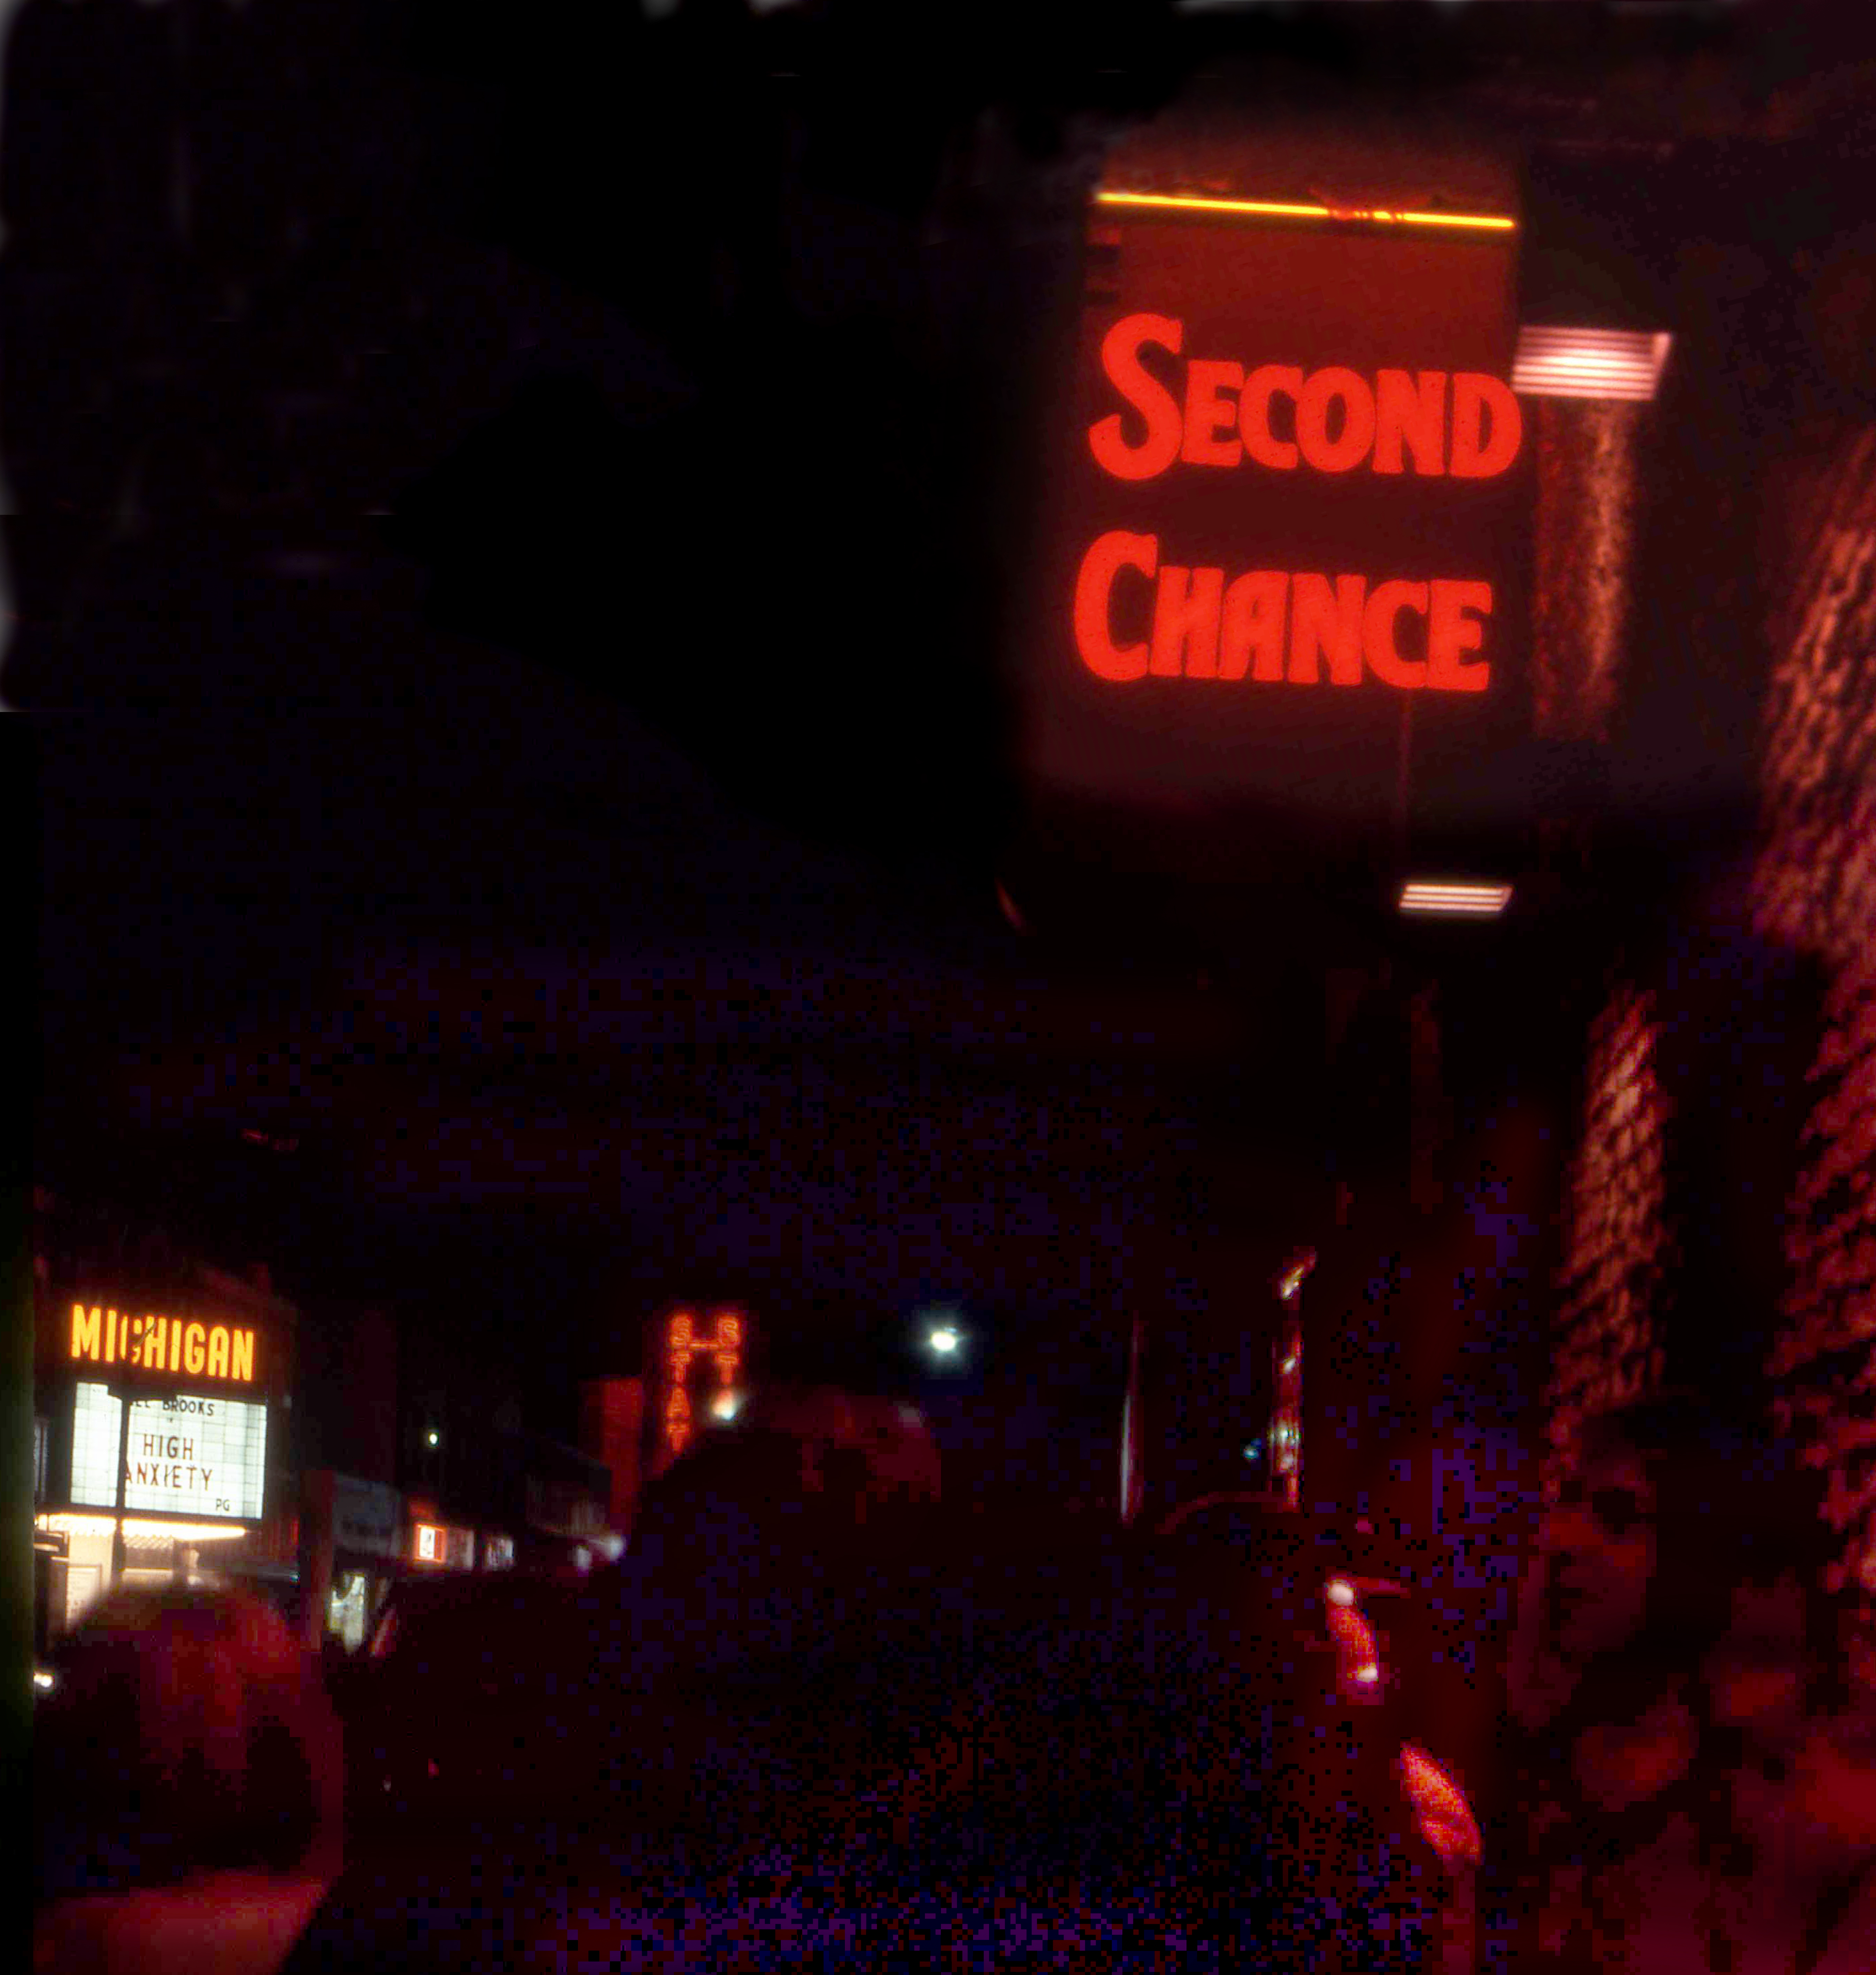 Second Chance, 1979 image